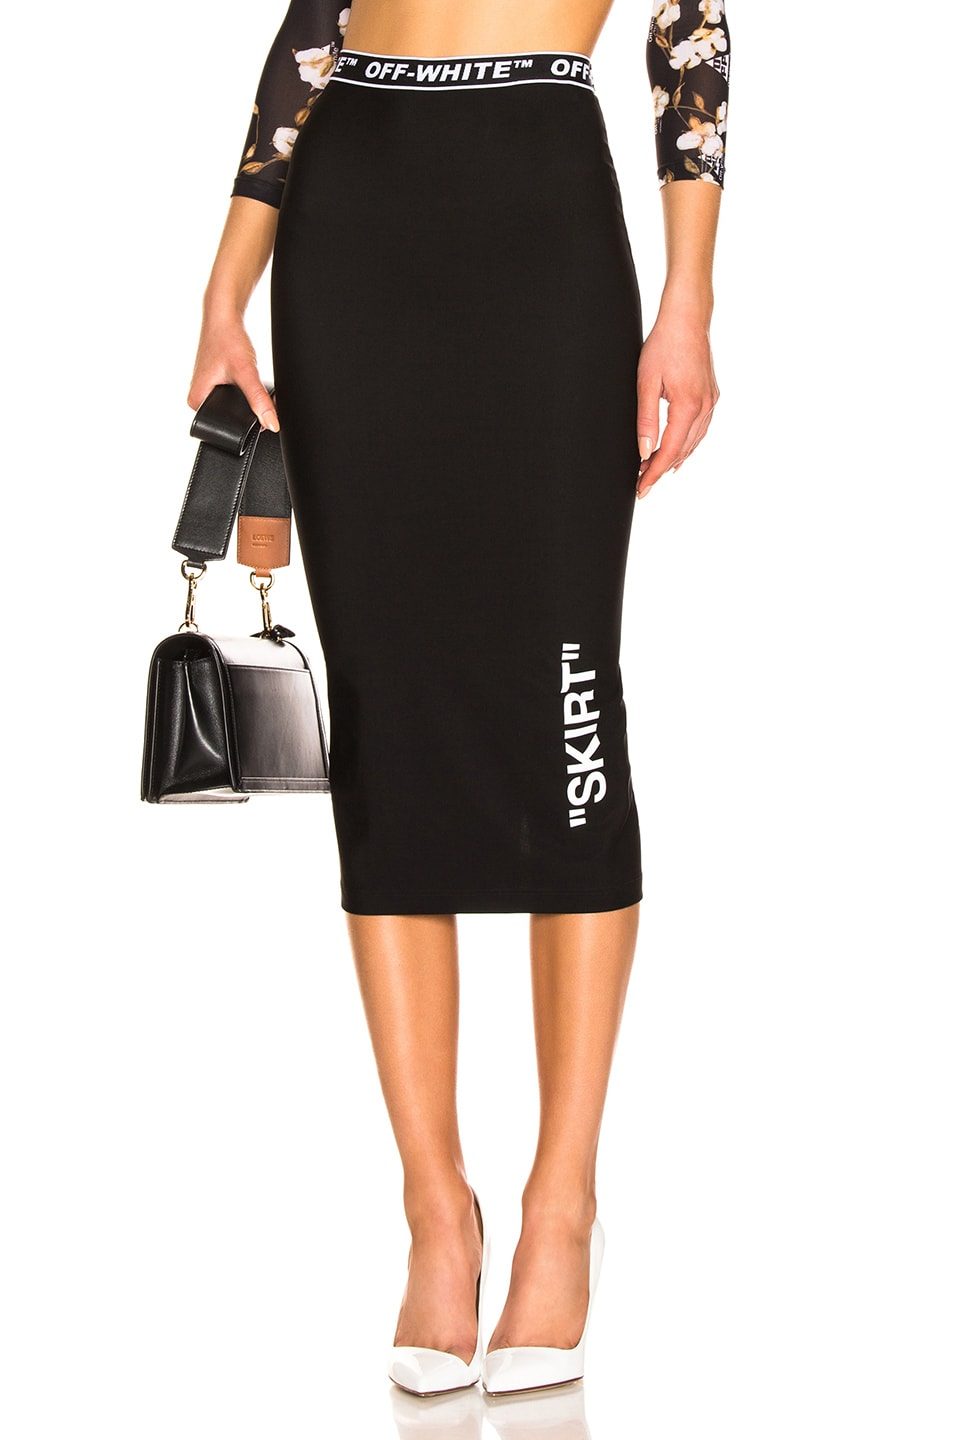 Image 1 of OFF-WHITE Pencil Skirt in Black